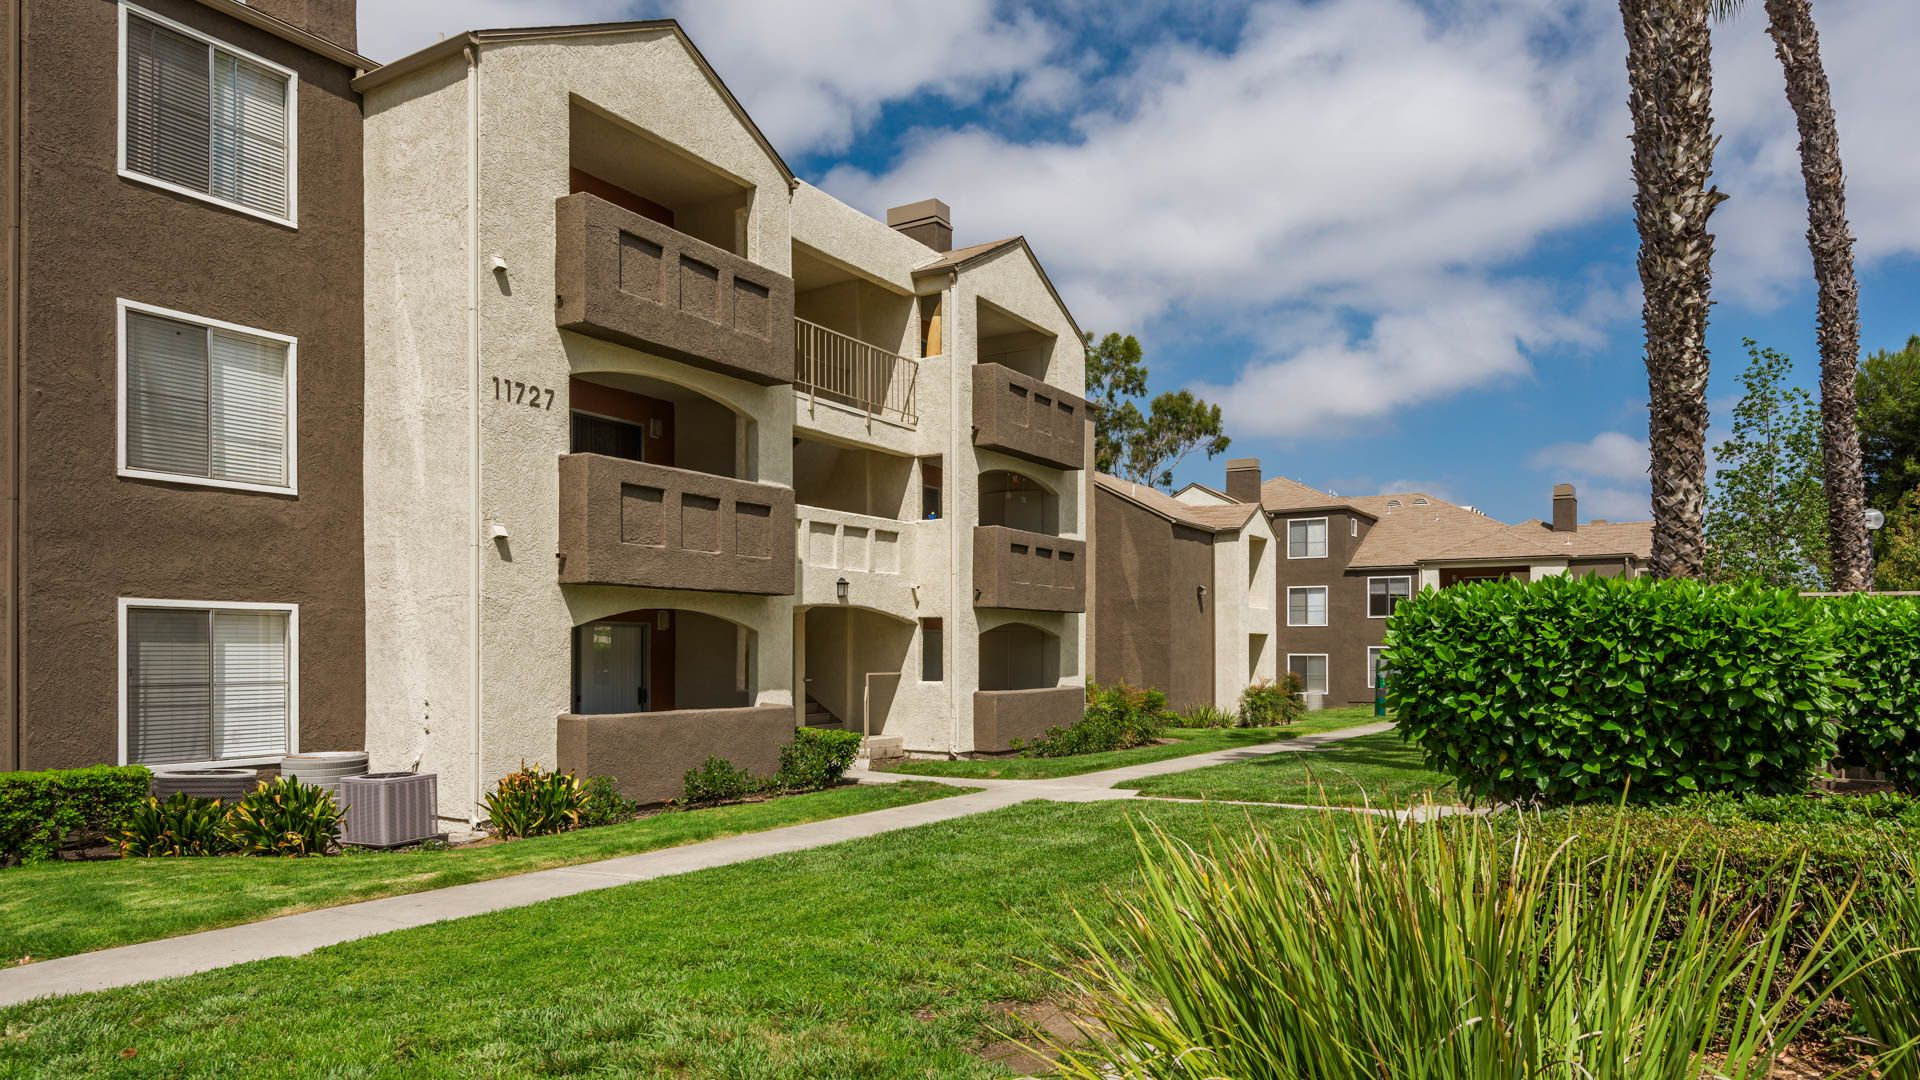 Carmel terrace apartments rancho bernardo 11540 for 12th avenue terrace apartments